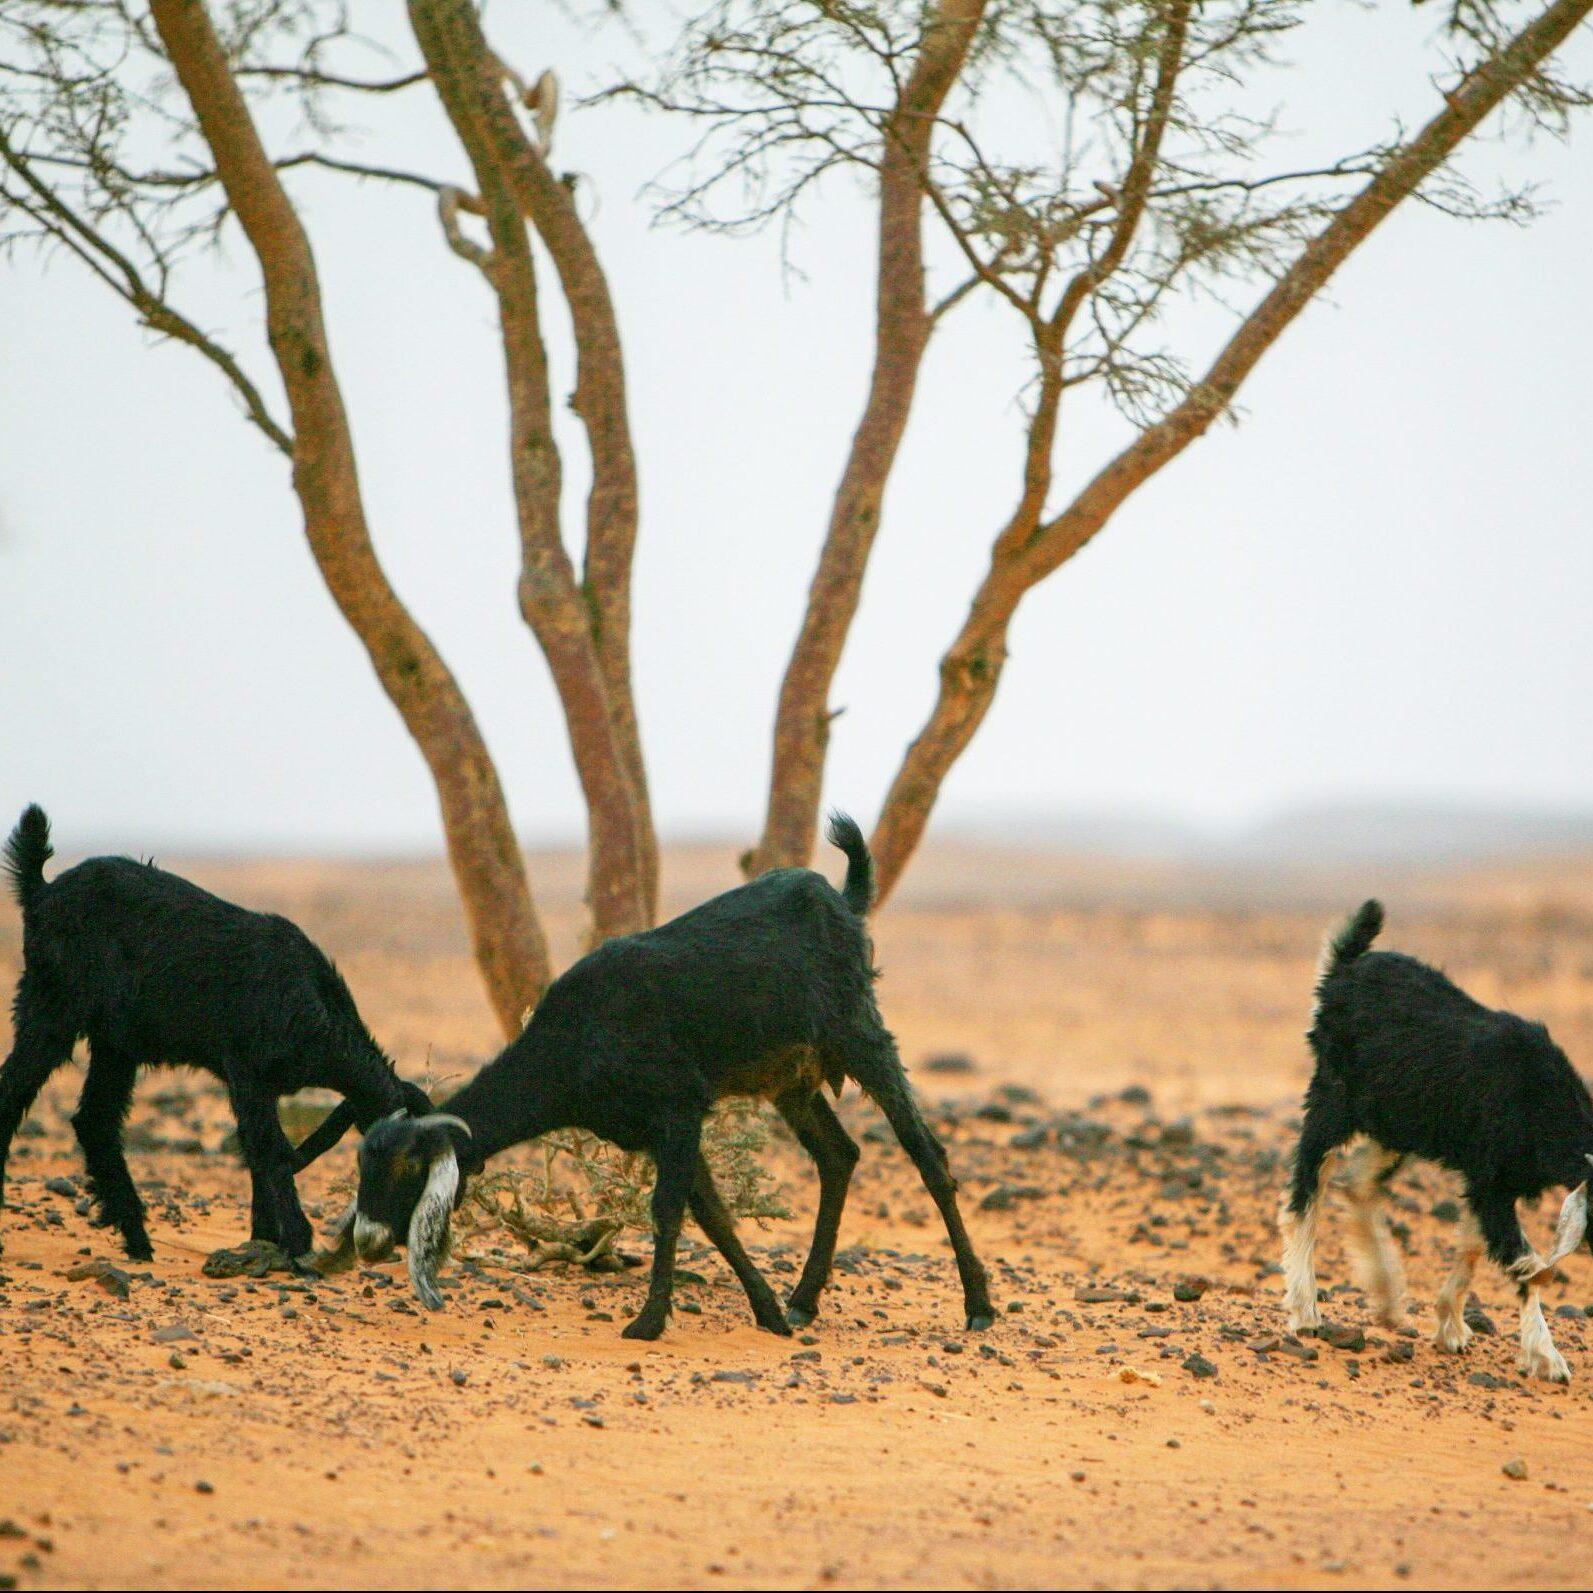 Goats under a thorn tree in the Nubian desert, near the abandoned pyramids of Meroe, an ancient city on the east bank of the River Nile, in northern Sudan. Meroe was the capital of the Kingdom of Kush for several centuries. The pyramids are funerary elements of the necropolis for the Nubian kings and queens, also known as the Black Pharaohs. It is a UNESCO world heritage site. There are more pyramids in Sudan than in Egypt. The Nubian Desert is in the eastern region of the Sahara Desert, between the Nile and the Red Sea.